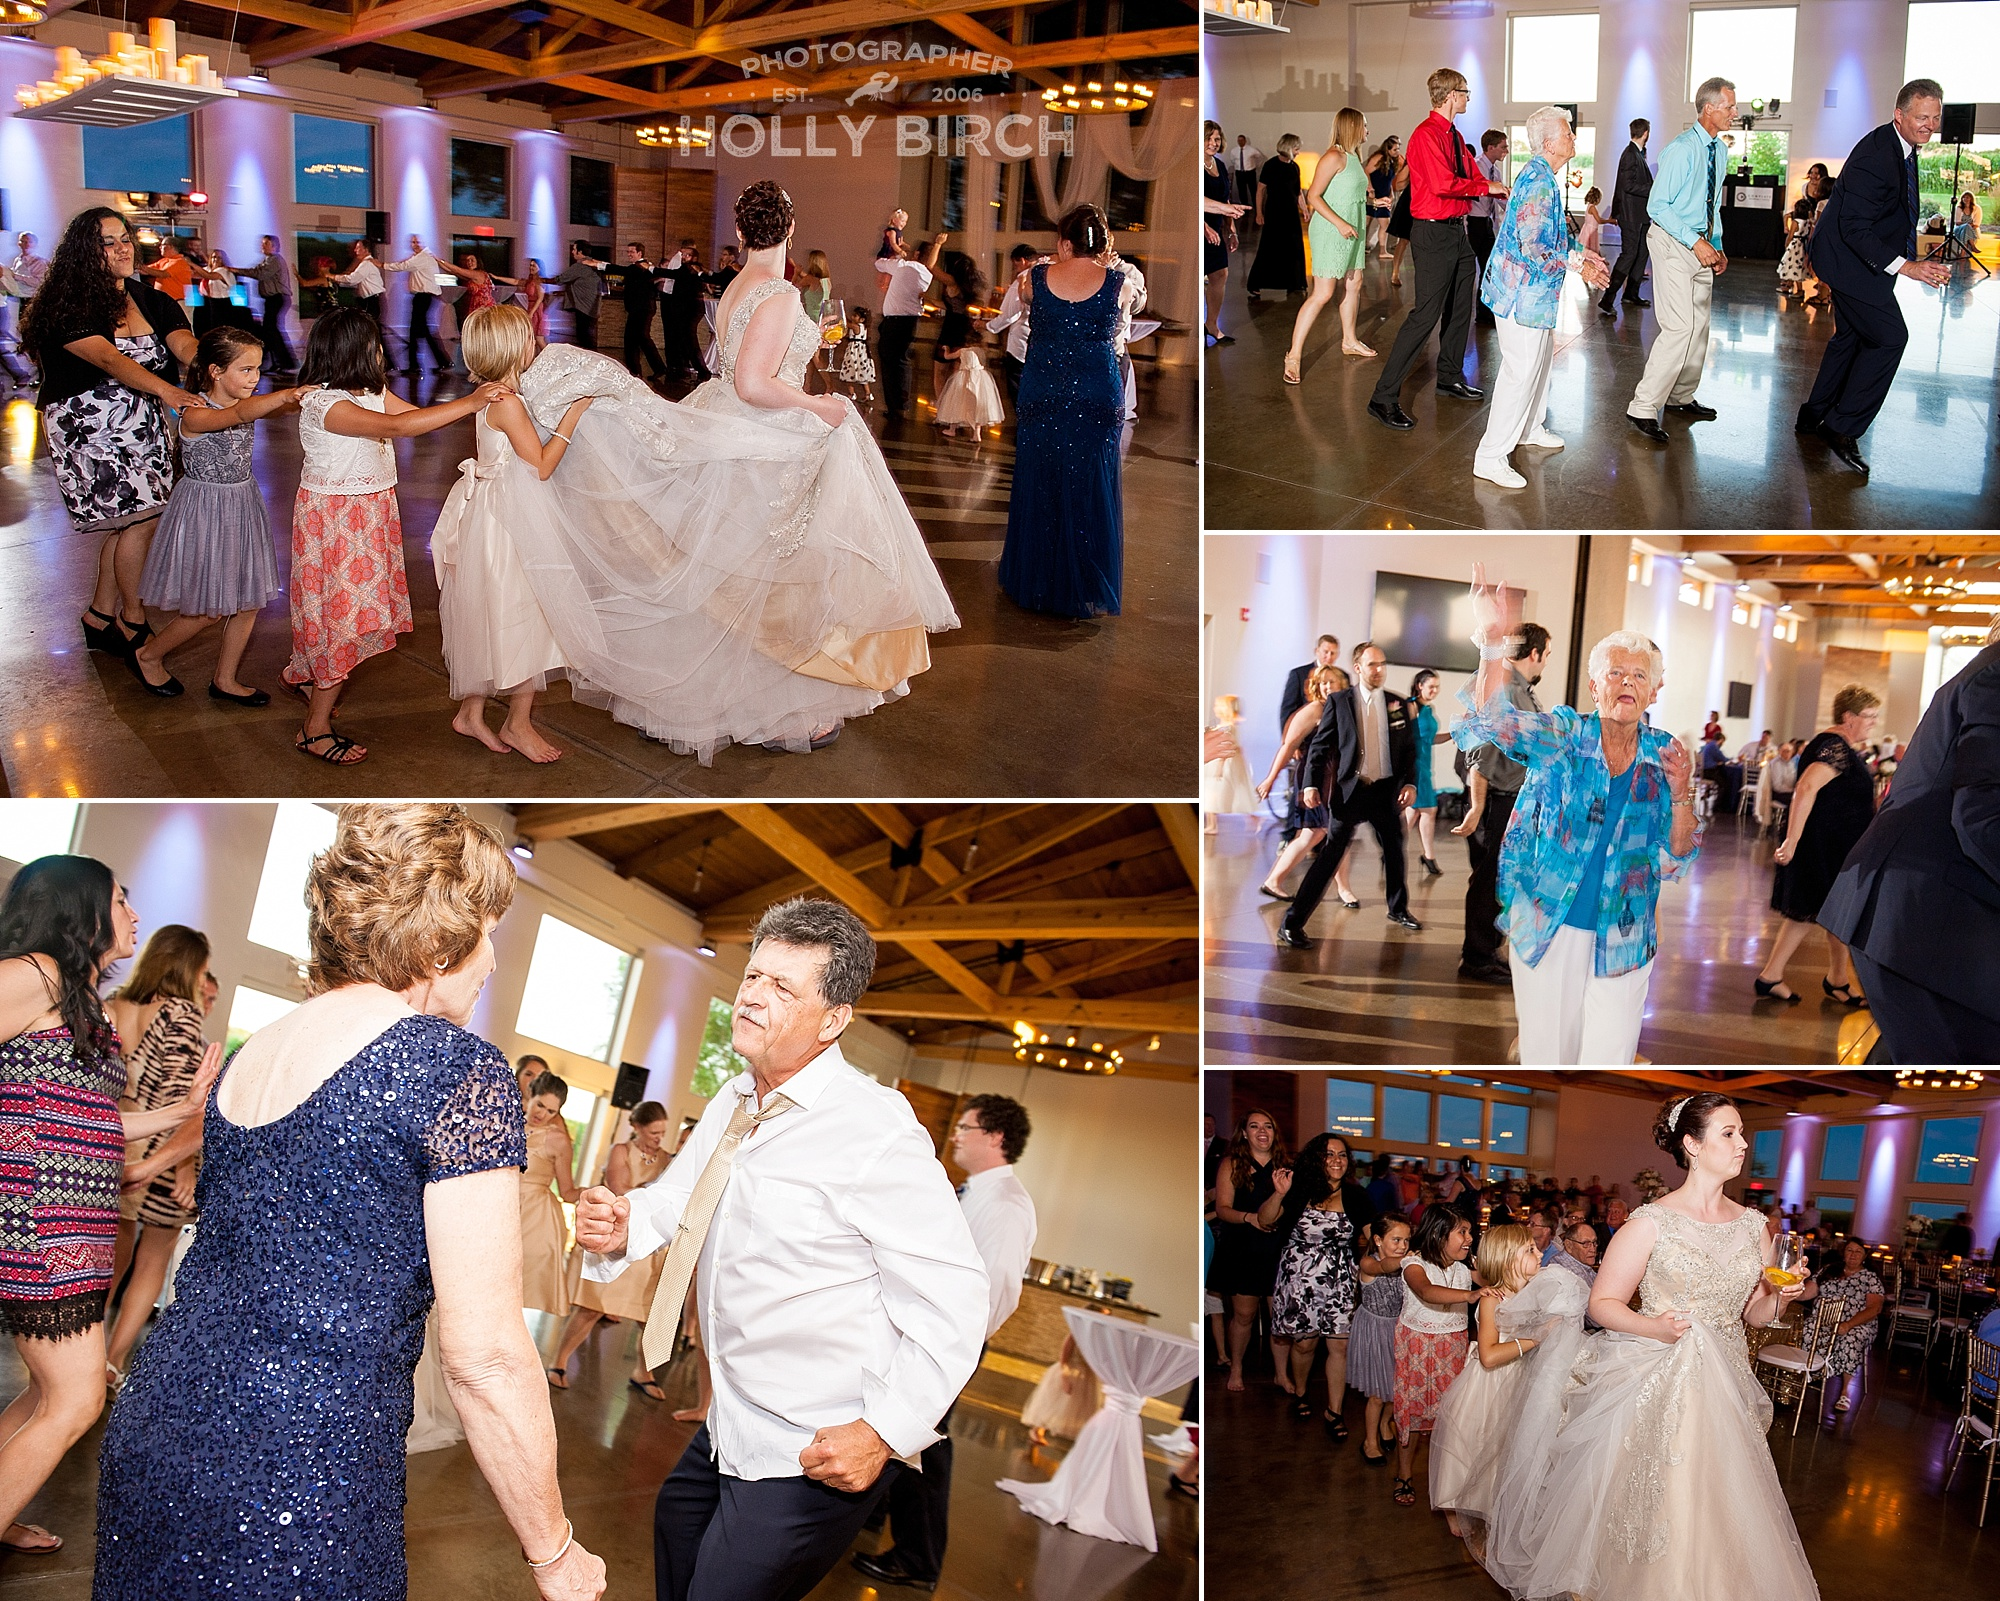 wedding guests dancing and having a good time